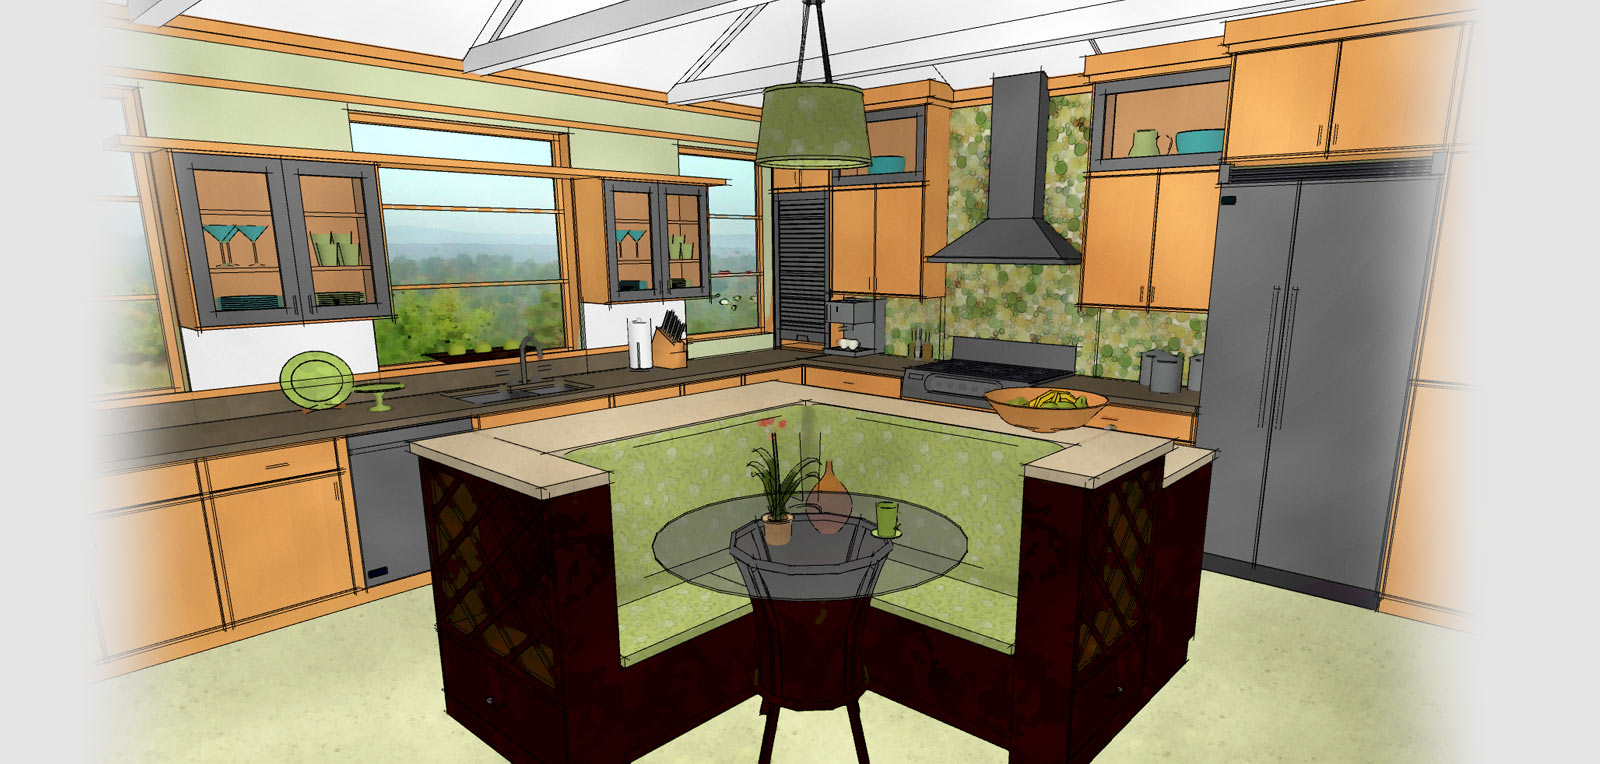 barbieandthecloset designing a new kitchen new design kitchen and